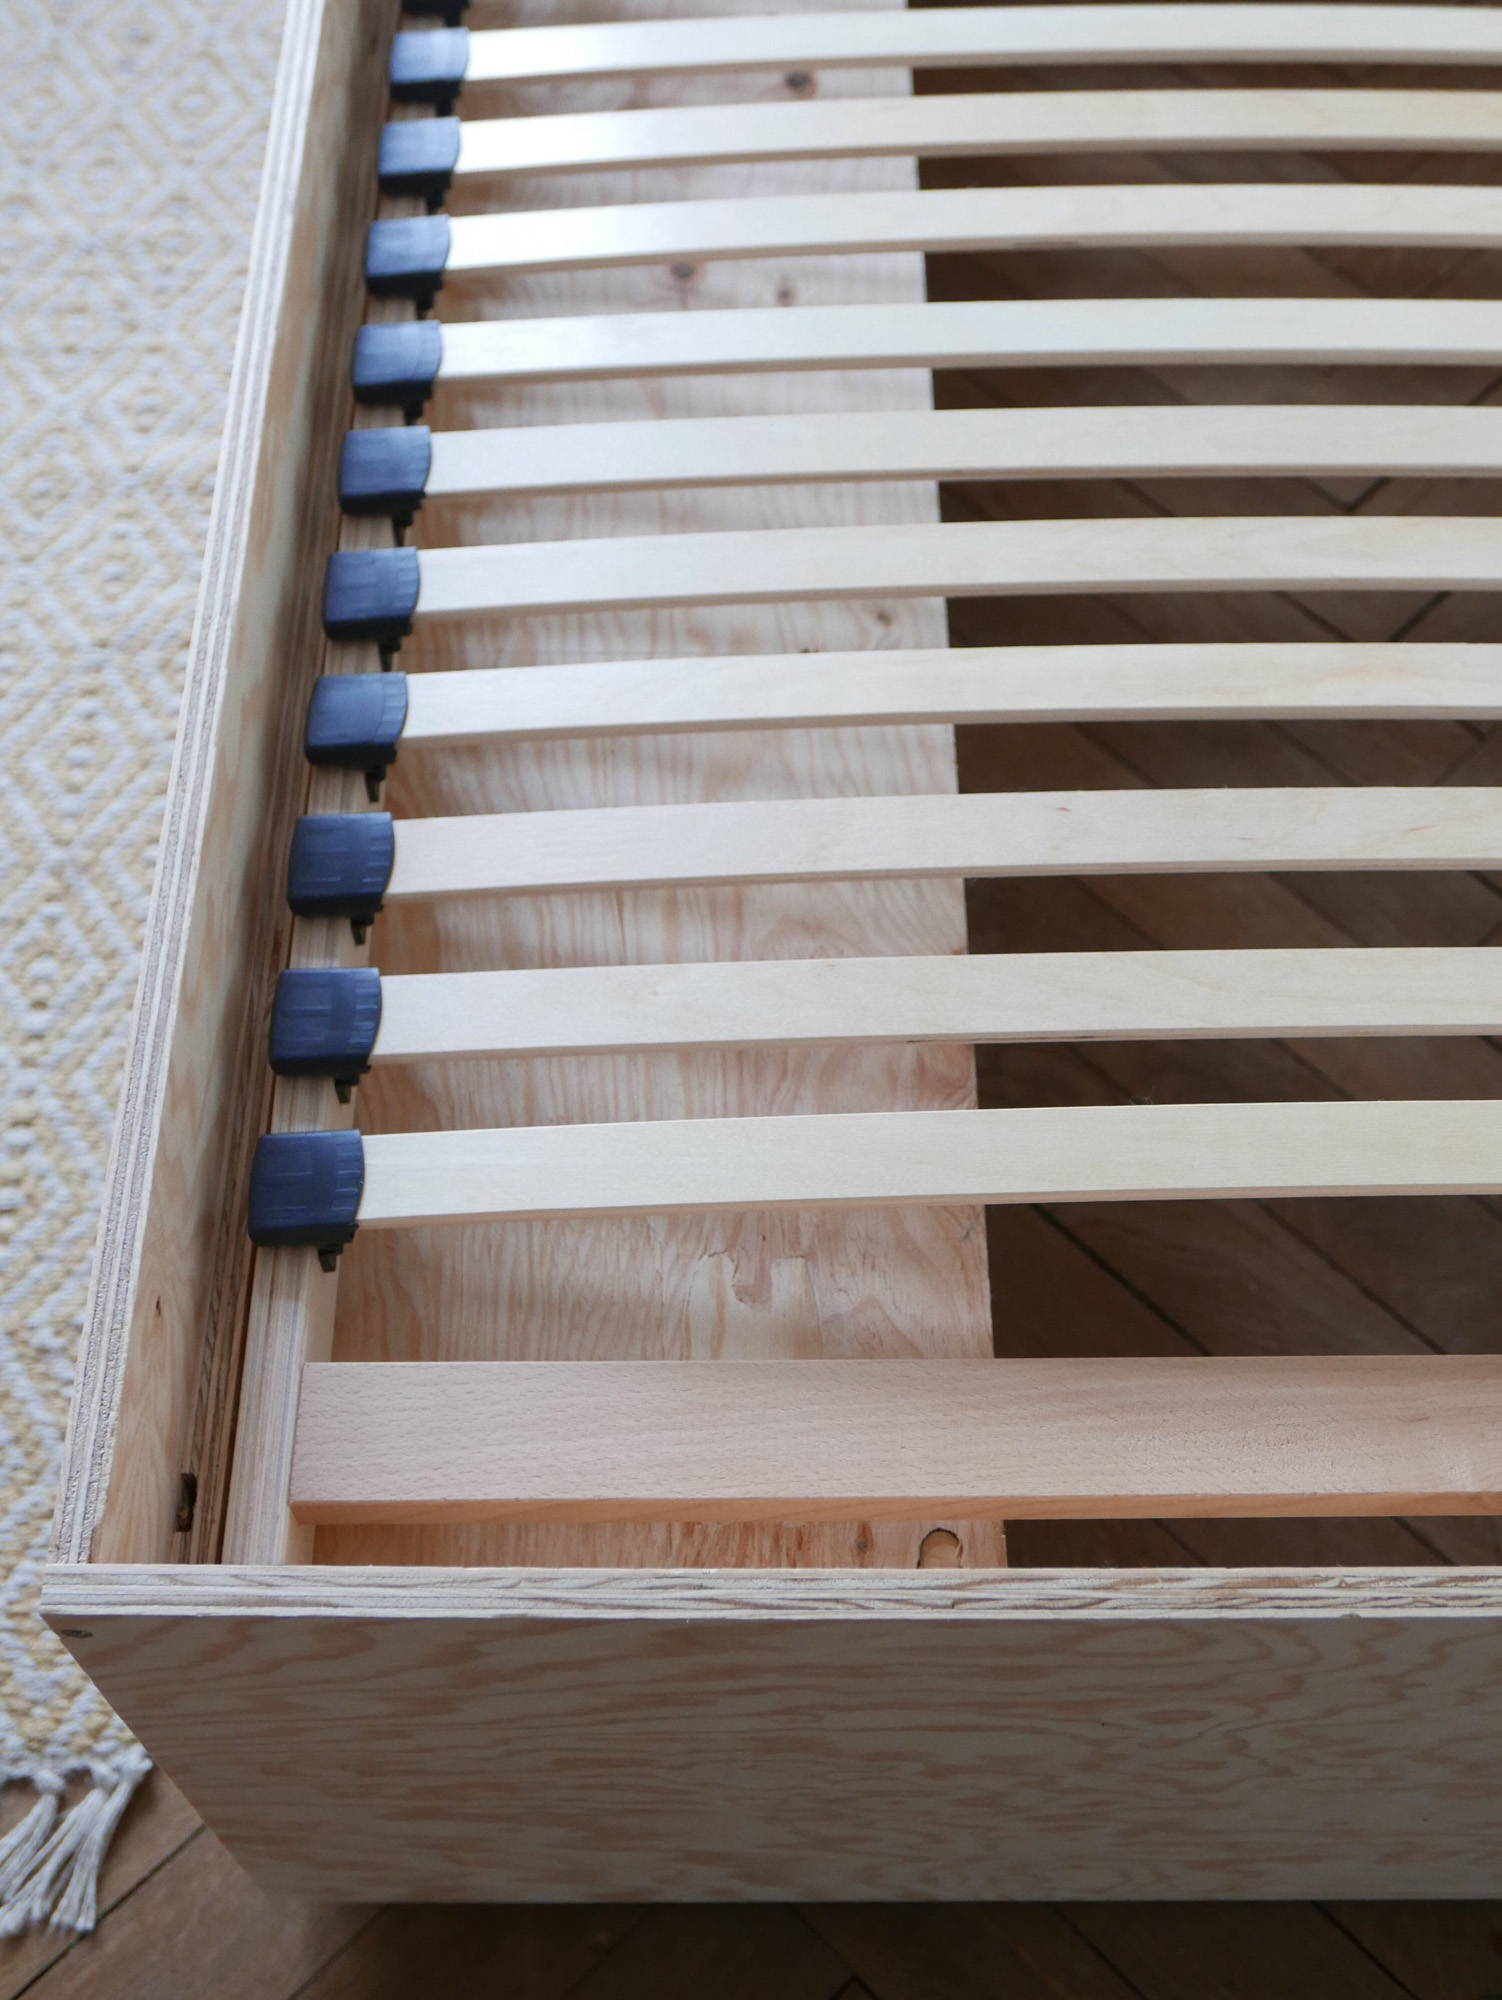 Guest bed construction showing slats